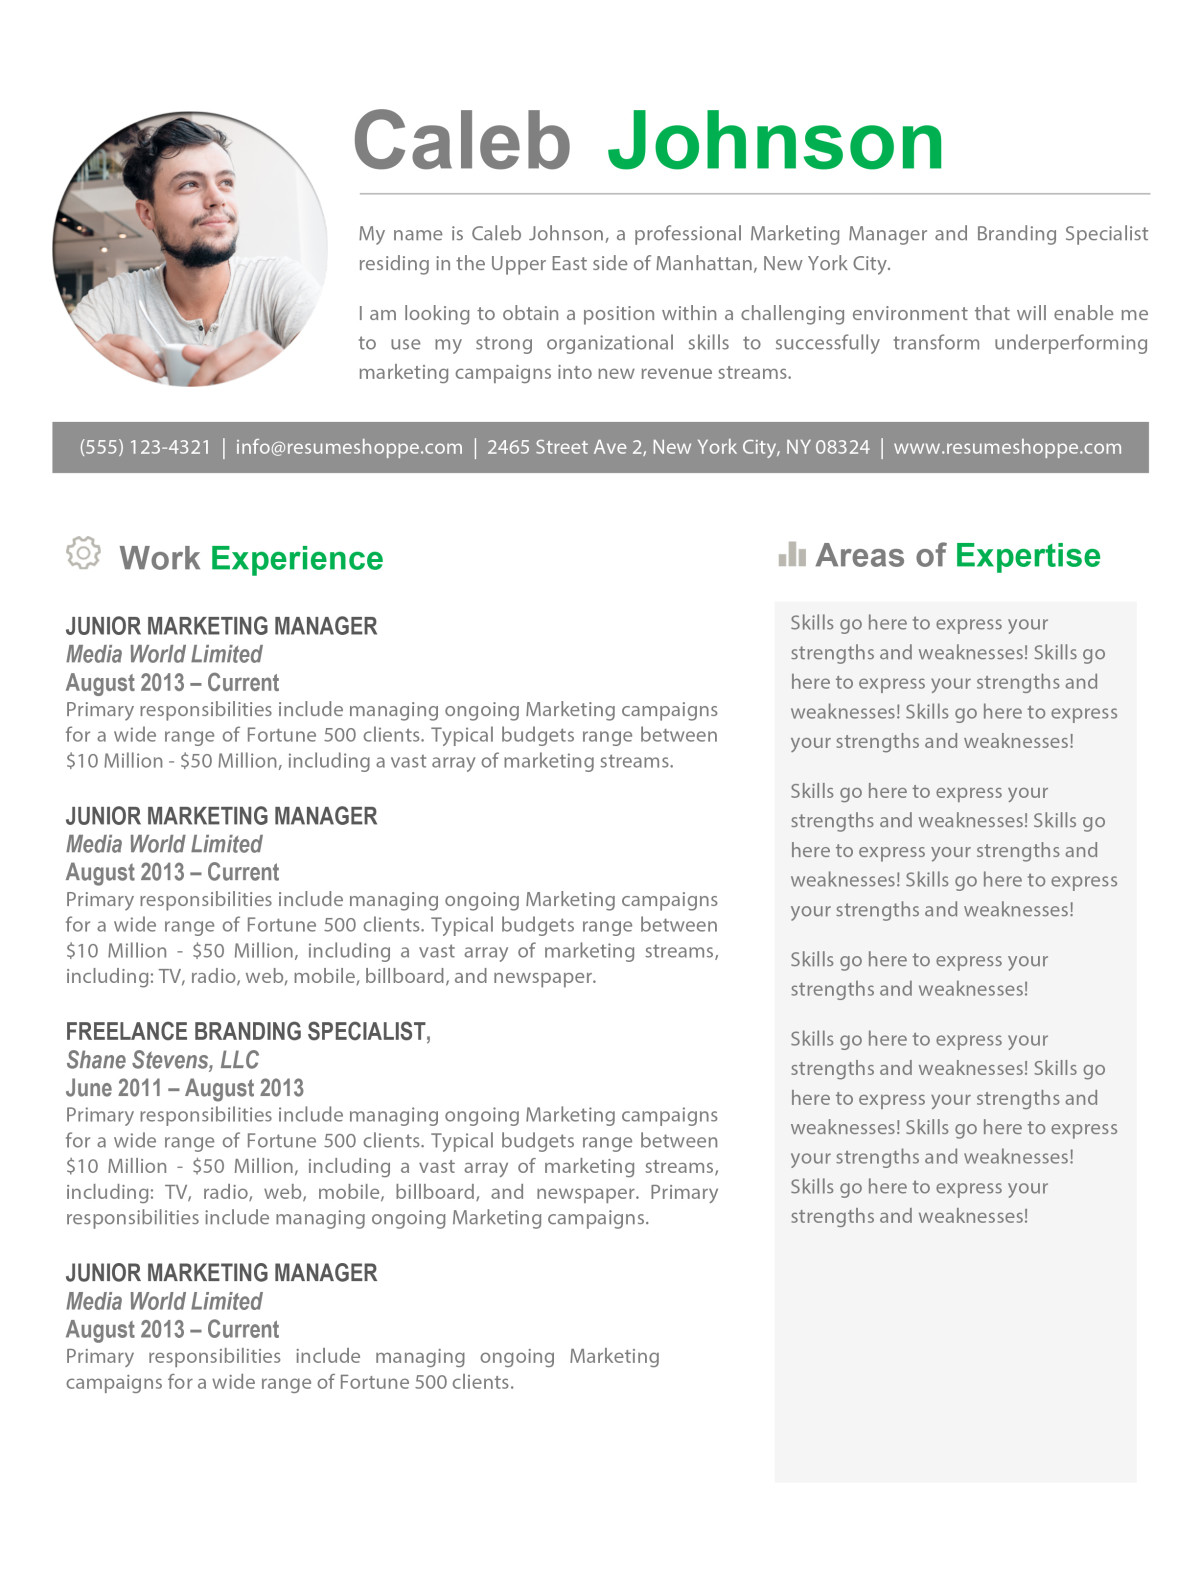 Delightful The Caleb Resume 1 Throughout Go Resume